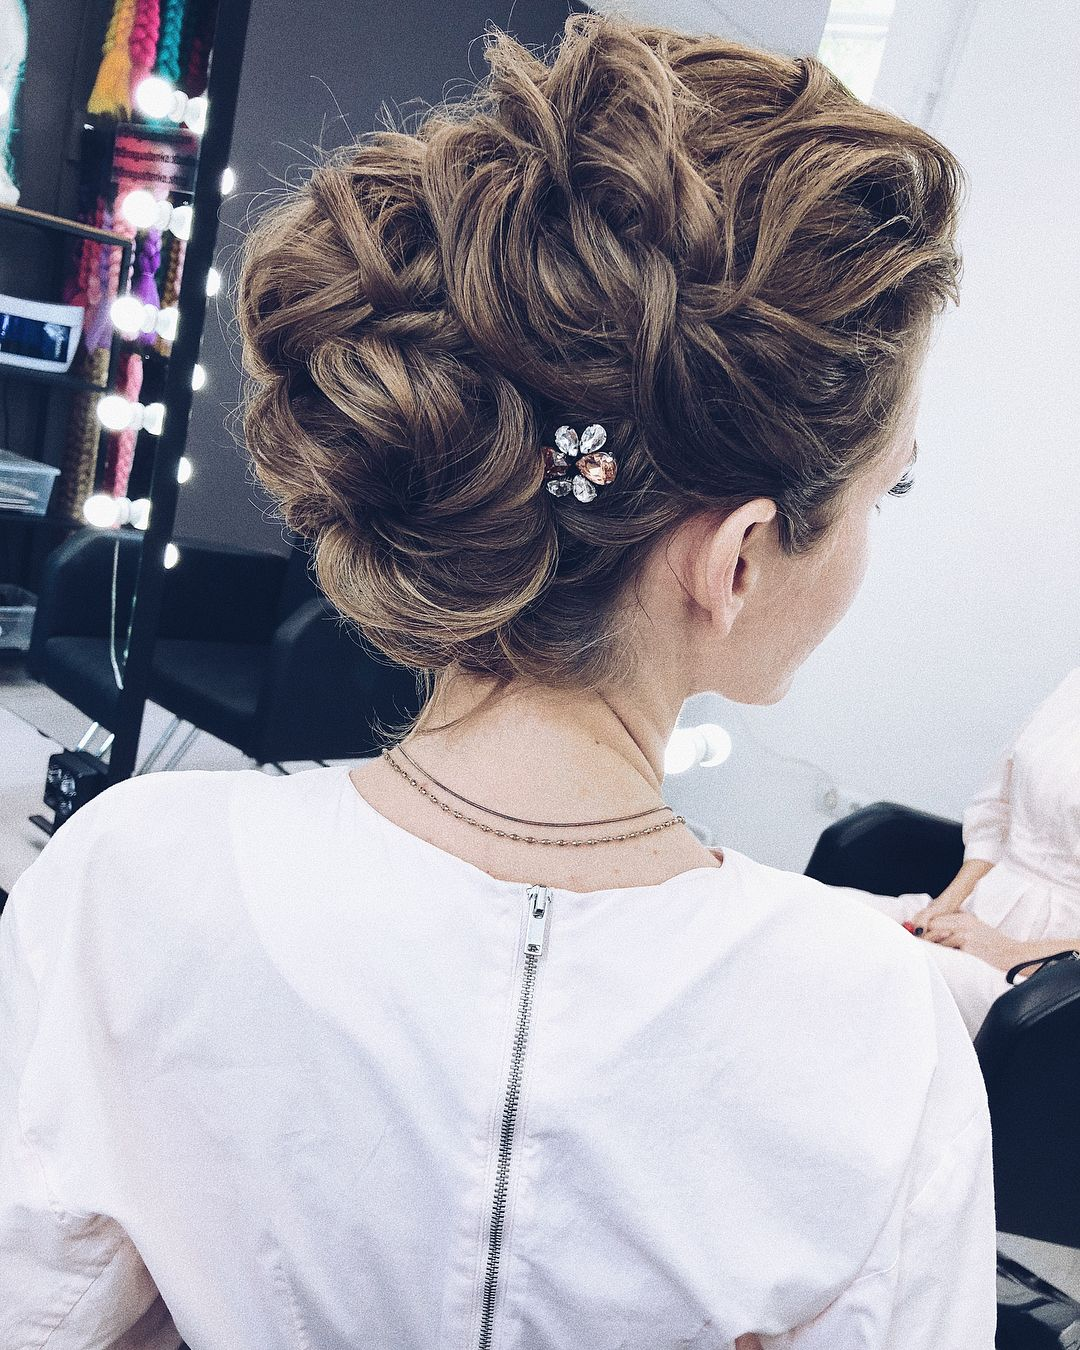 Most Popular Prom Updos For Long Hair Updo Hairstyle Ideas Long Hair Updo Long Hair Styles Hair Styles